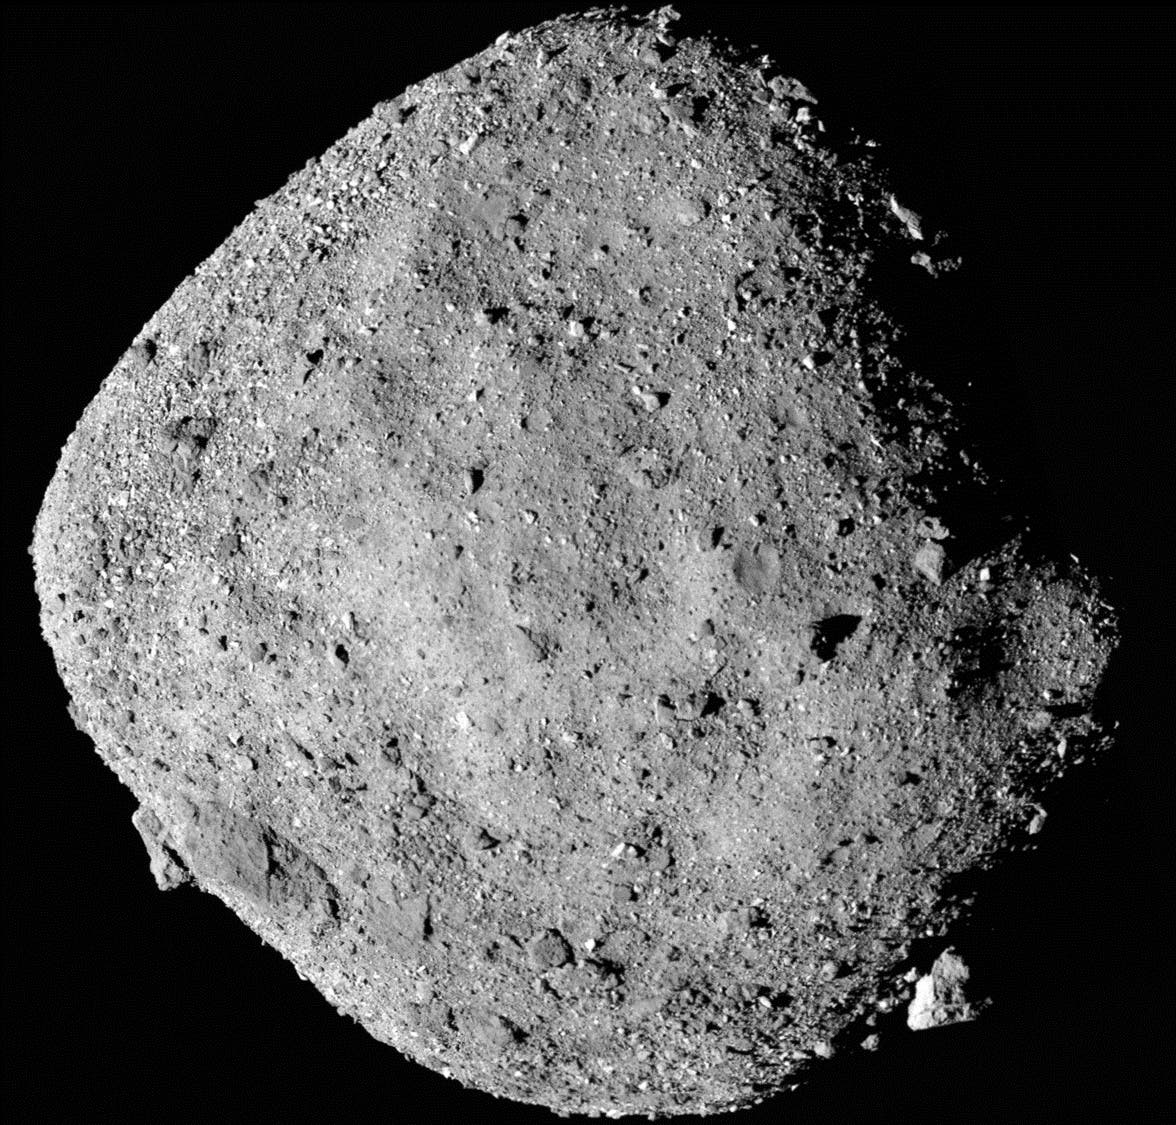 NASA handout of a mosaic image of asteroid Bennu composed of 12 PolyCam images. (Reuters)